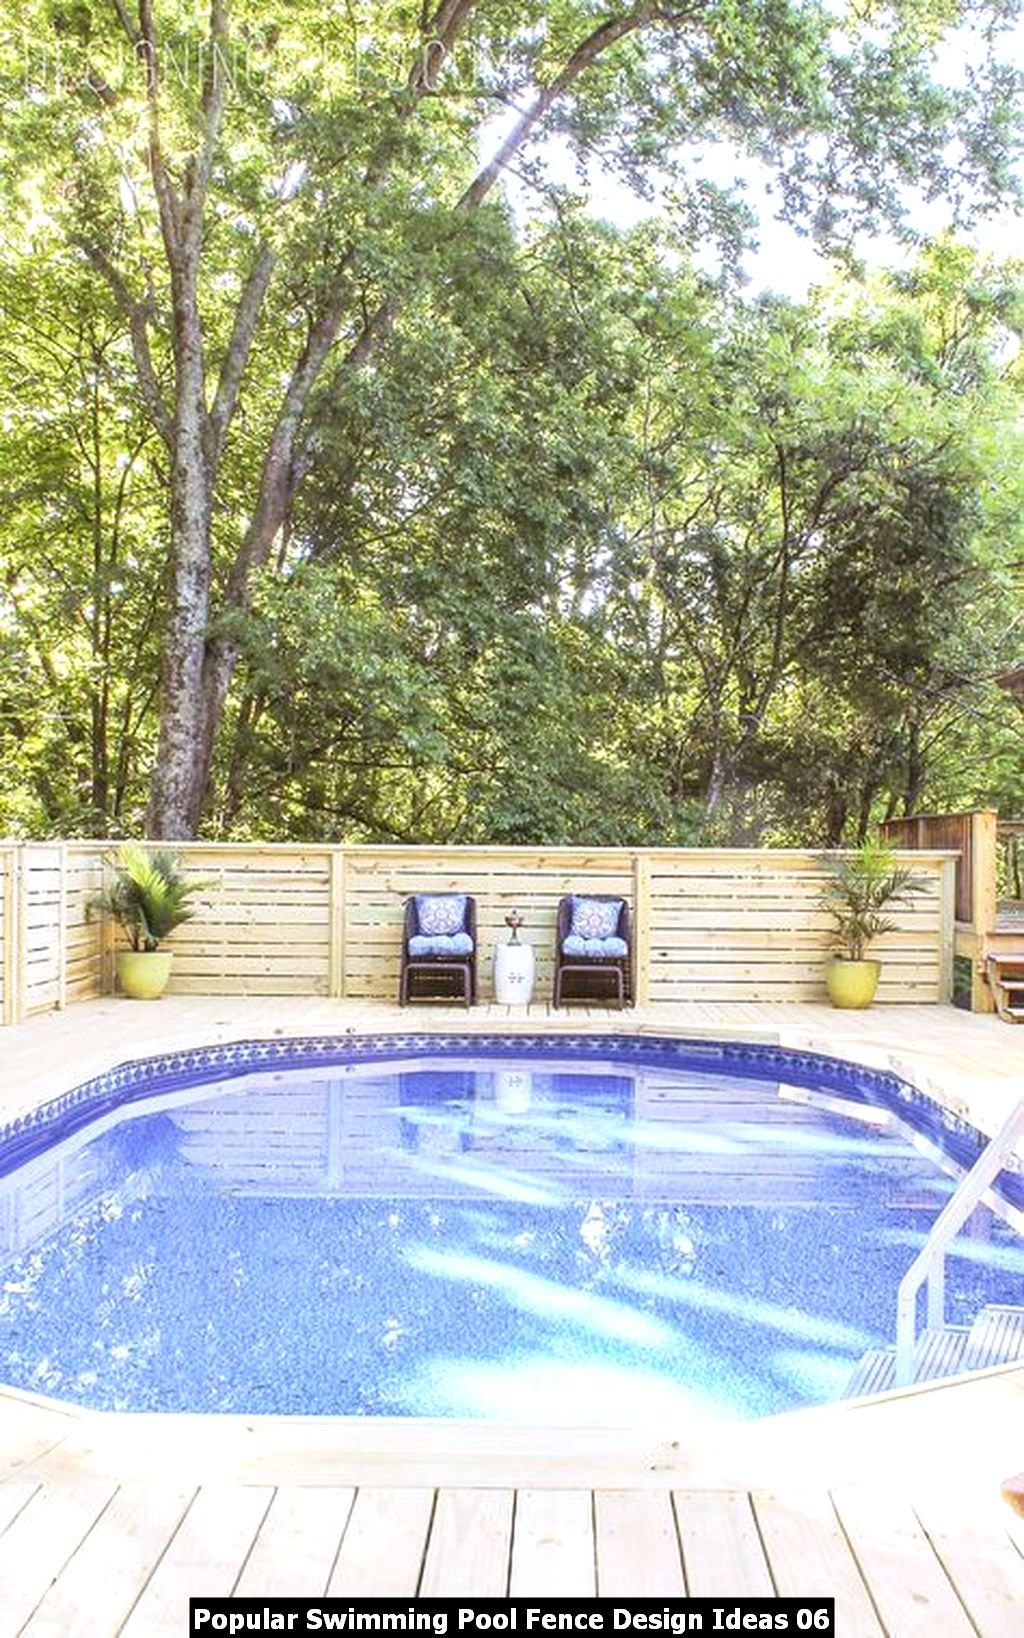 Popular Swimming Pool Fence Design Ideas 06